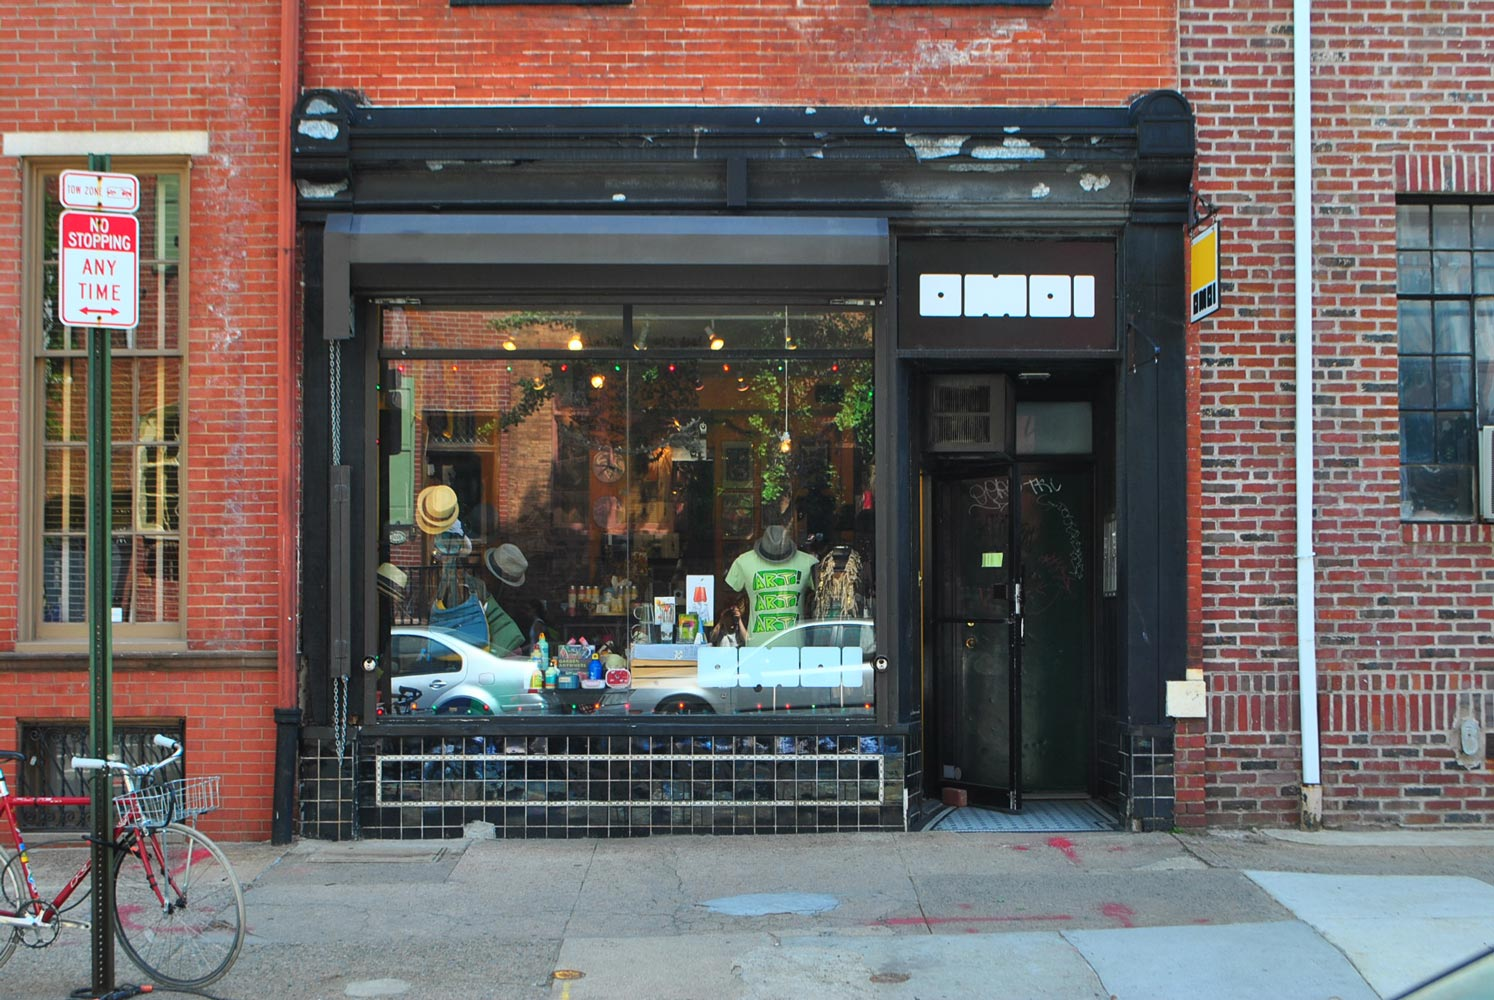 The storefront in 2010